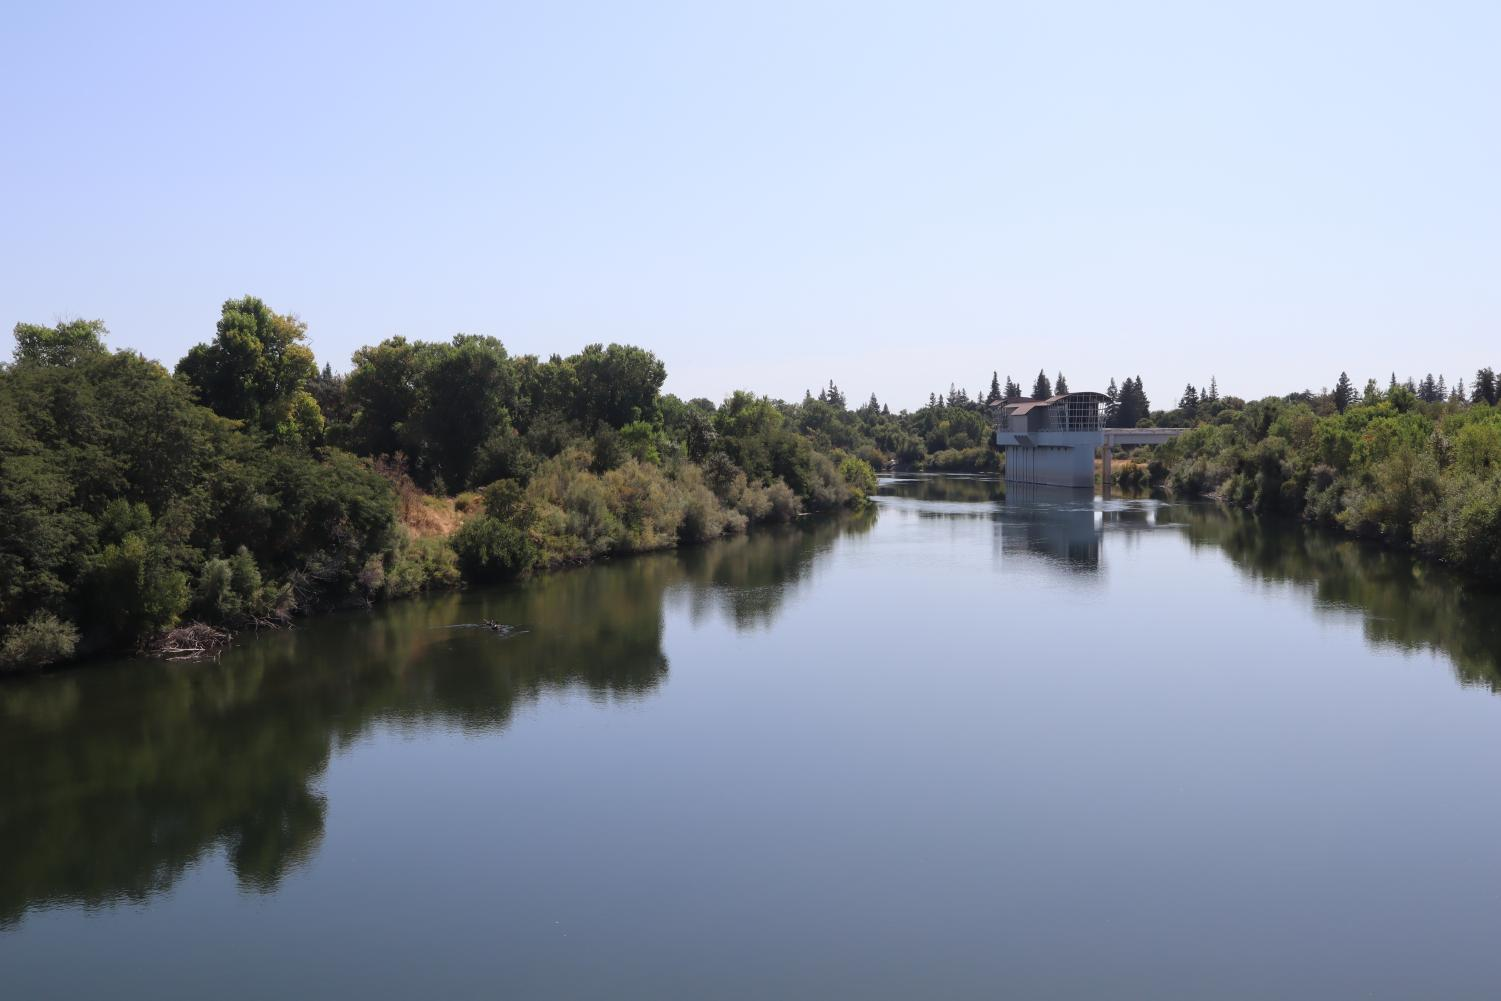 View of the American River from Sac State's Guy West Bridge. Sac State's Institute of Social Research partnered with Valley Vision to complete a survey on the Sacramento region's view on climate change.